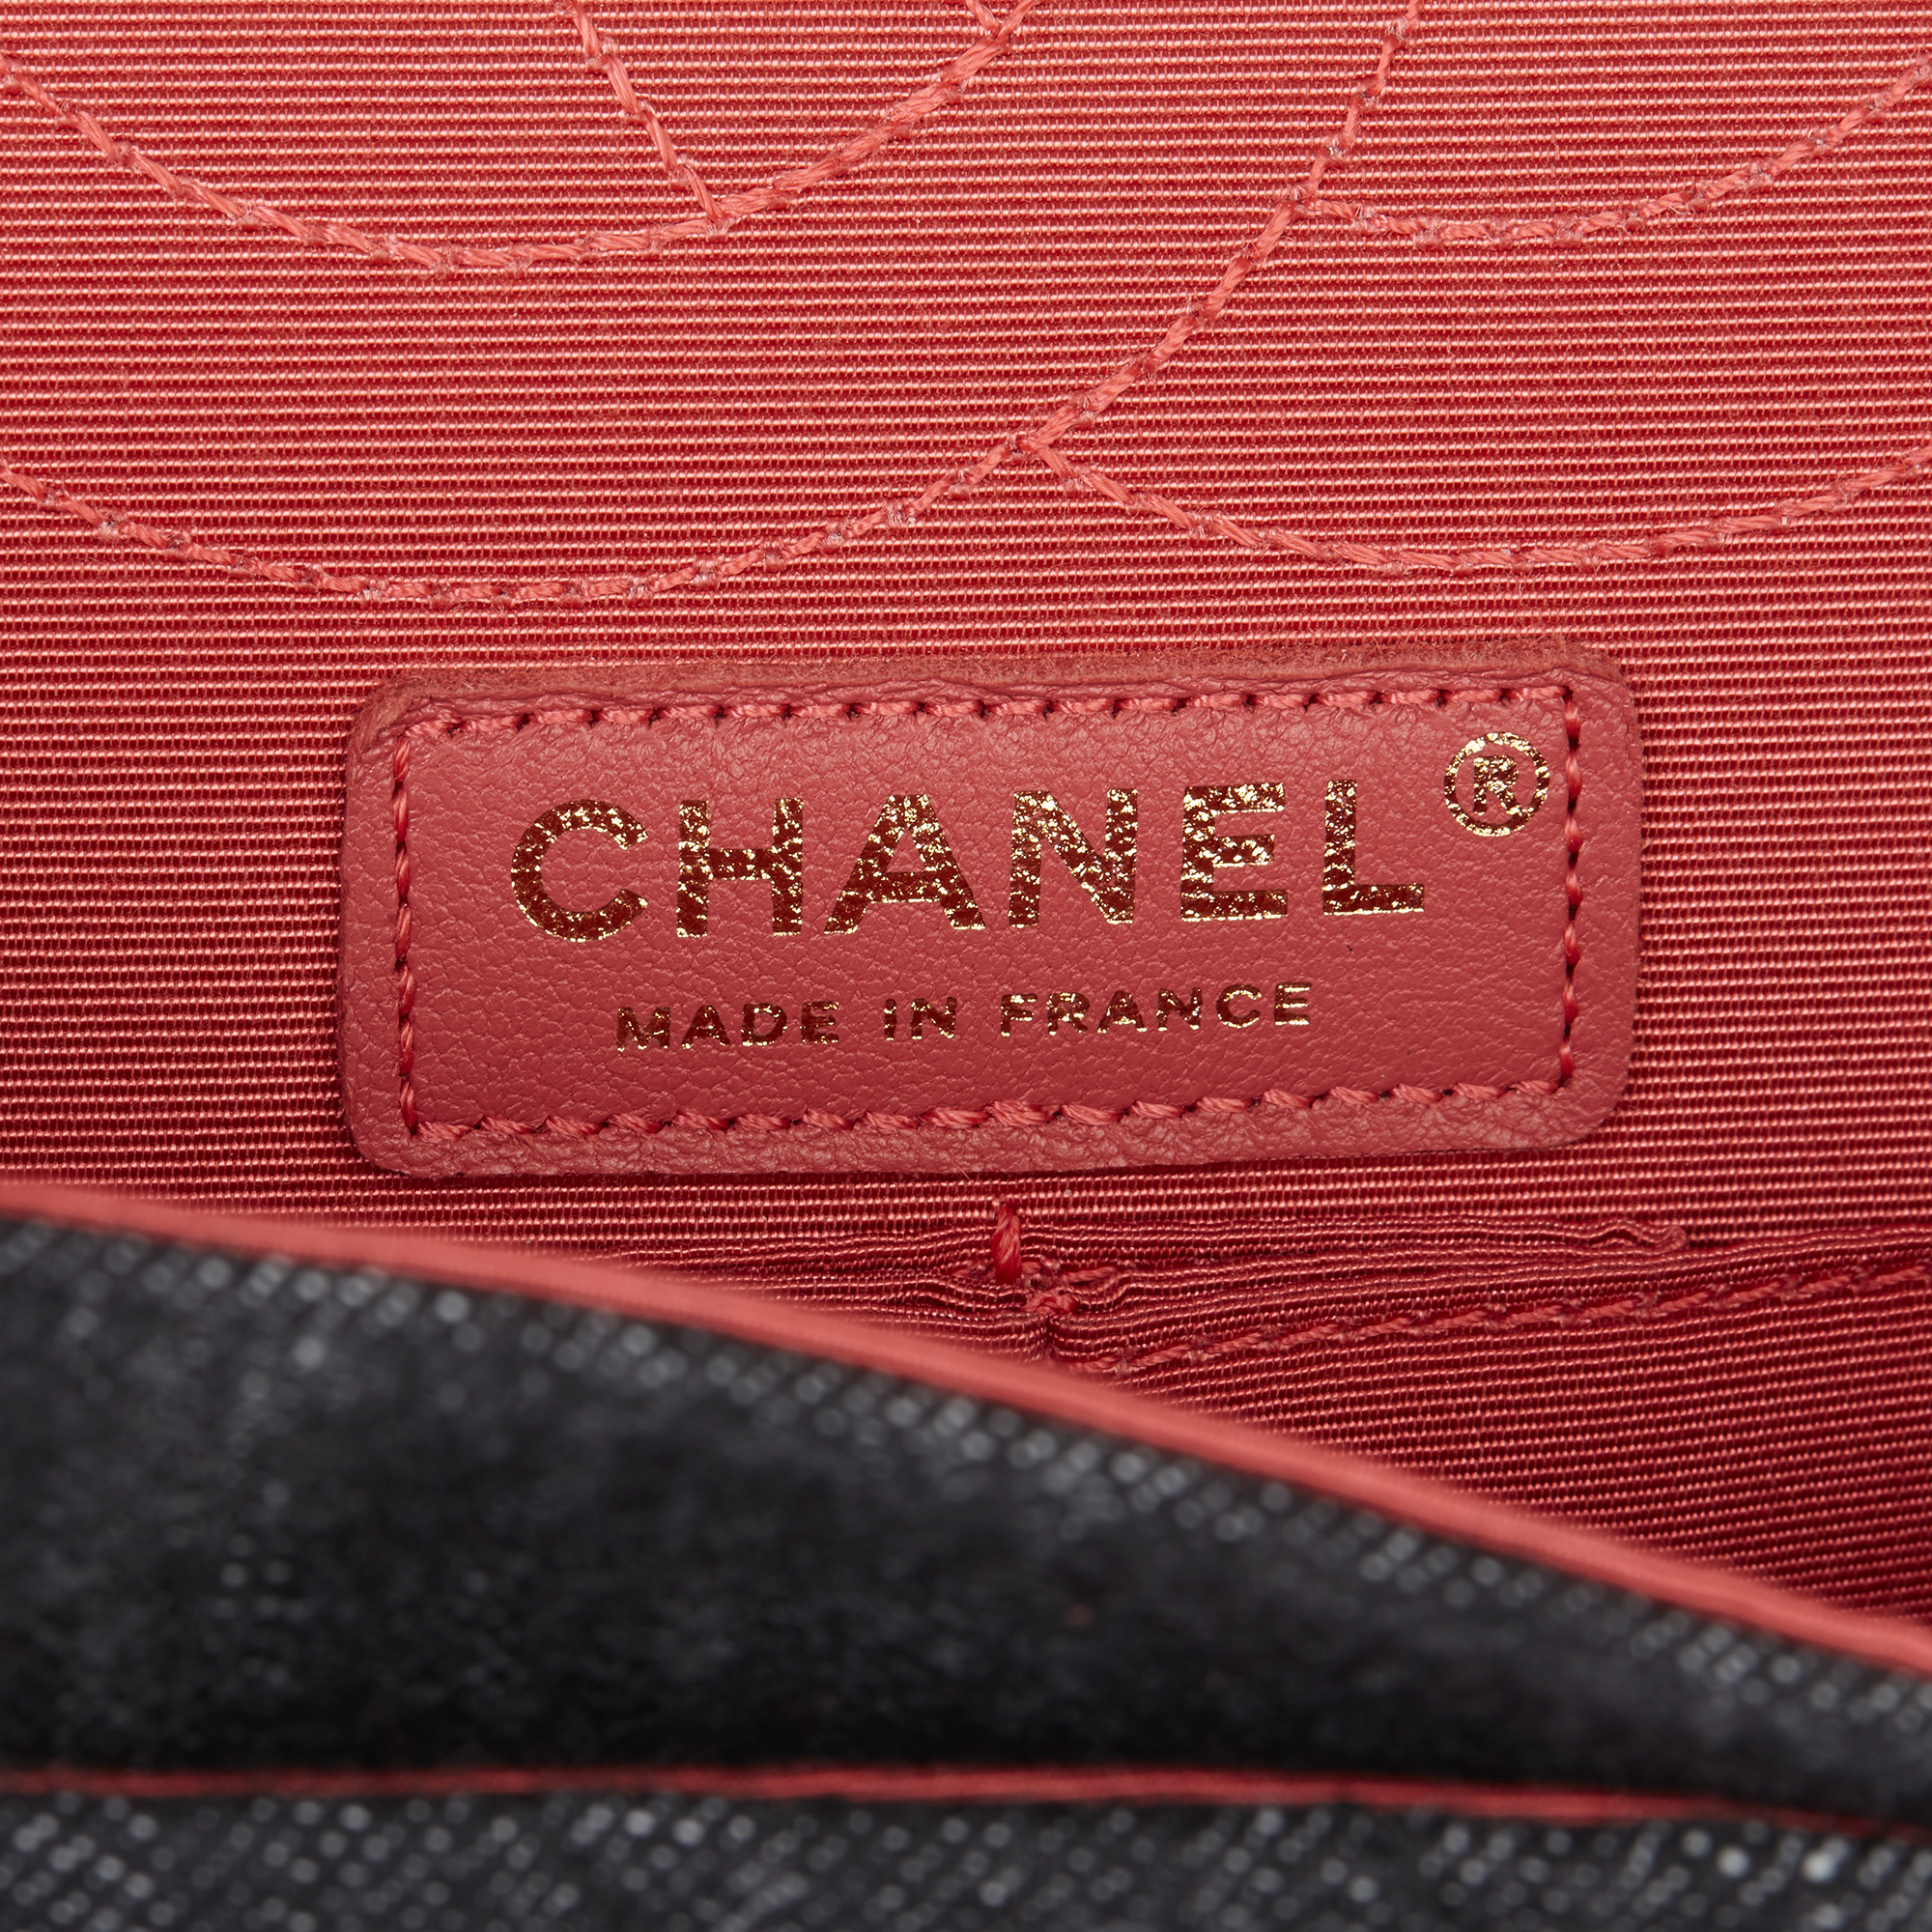 Chanel Black Quilted Denim & Pink Tweed 2.55 Reissue 225 Double Flap Bag - Image 6 of 12